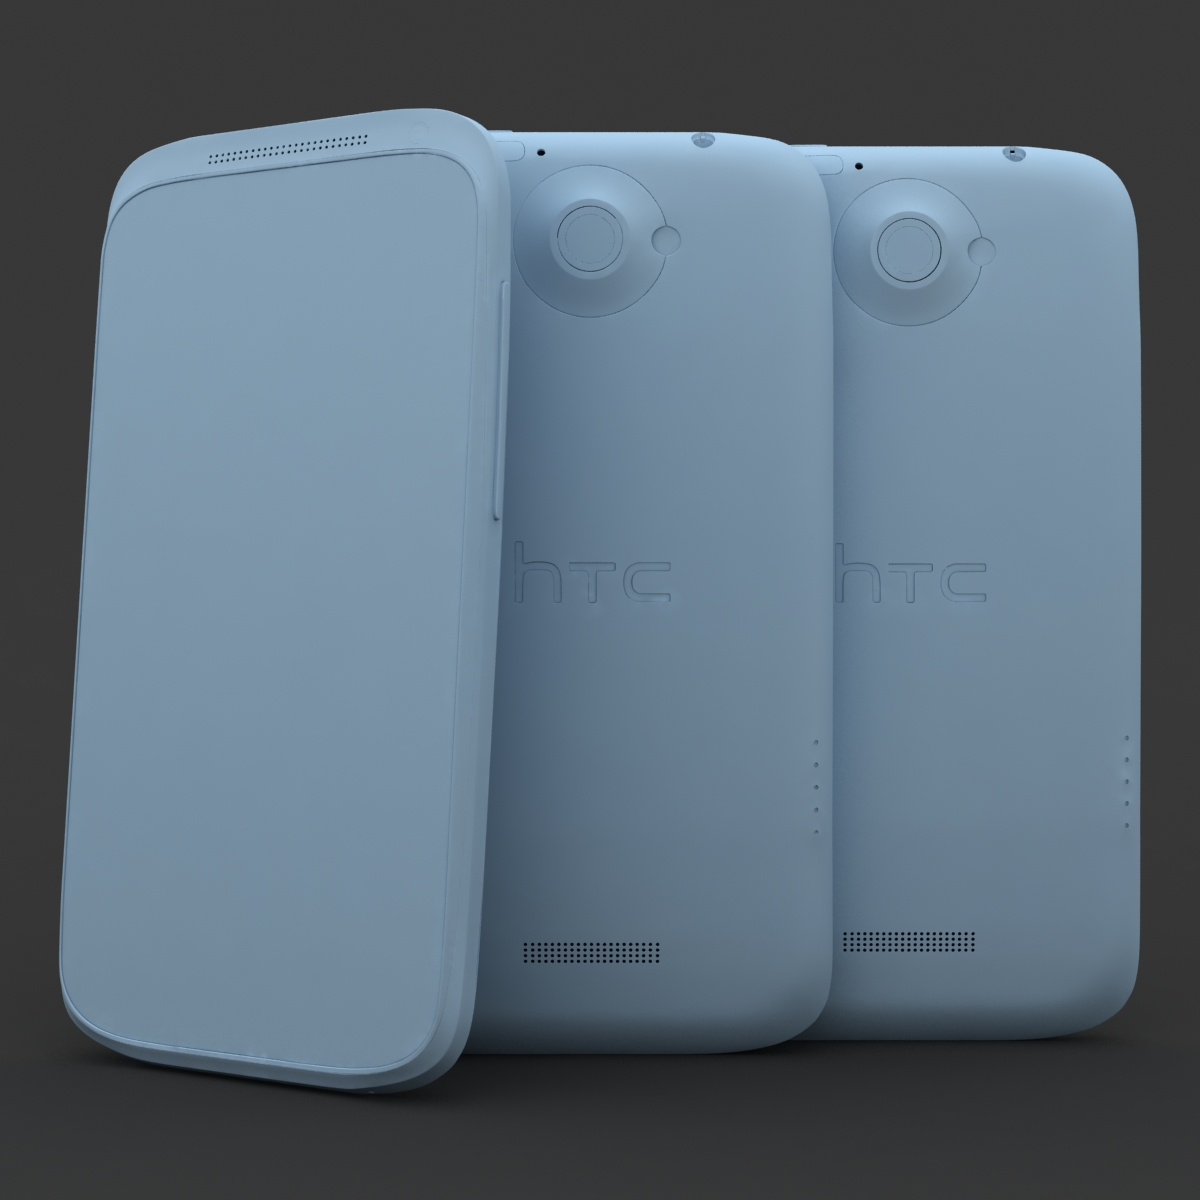 htc one x+ black and white 3d model 3ds max fbx c4d lwo obj 151432